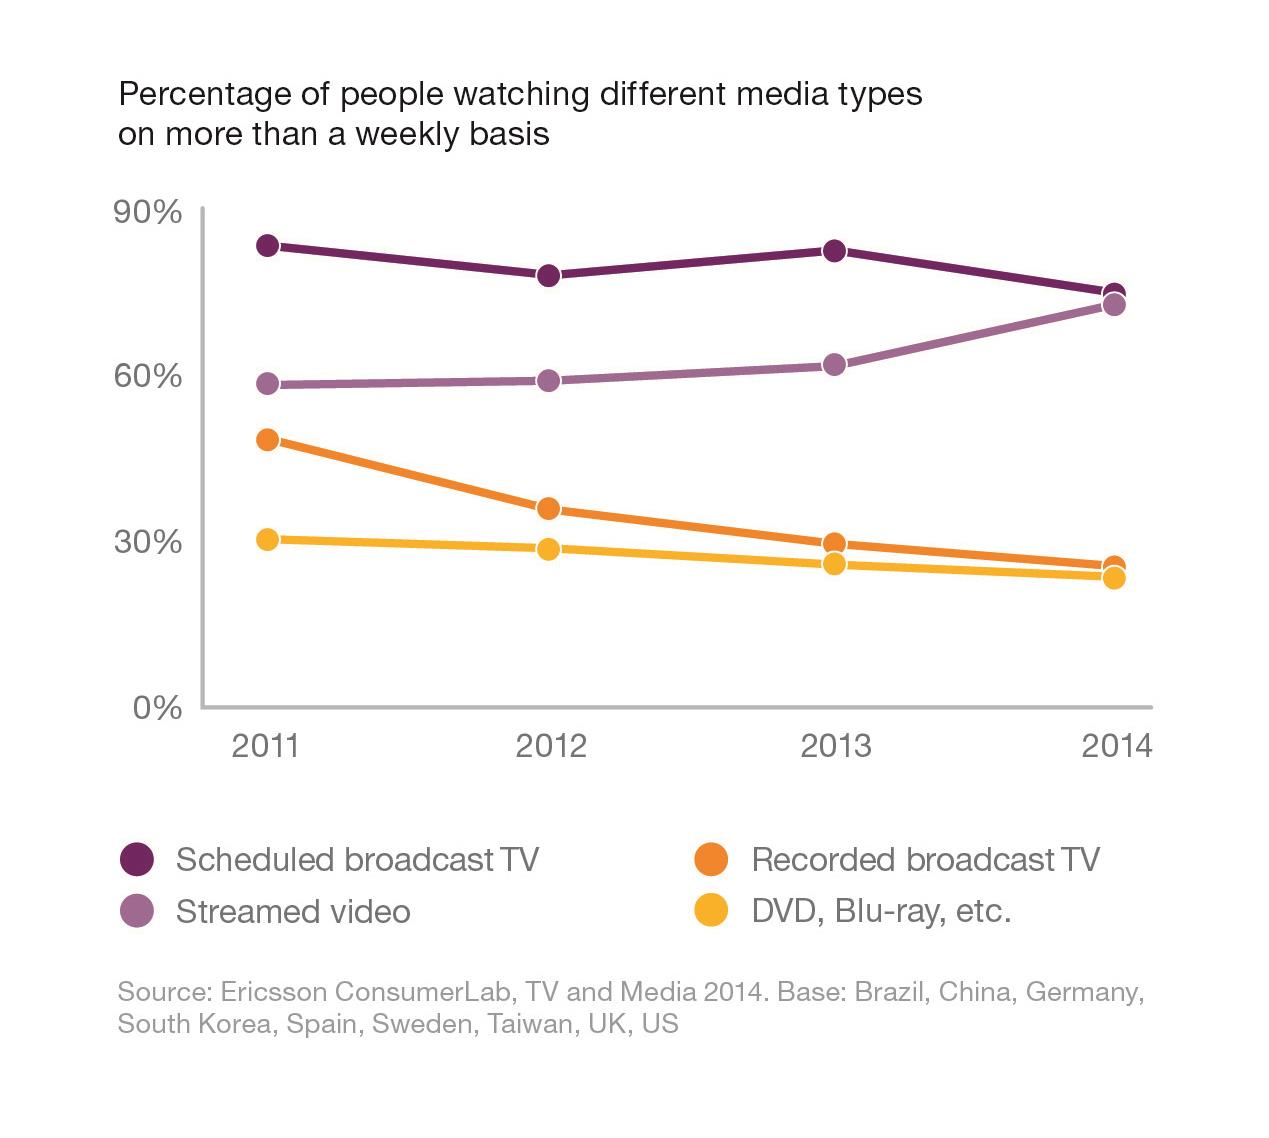 Percentage of people watching media weekly